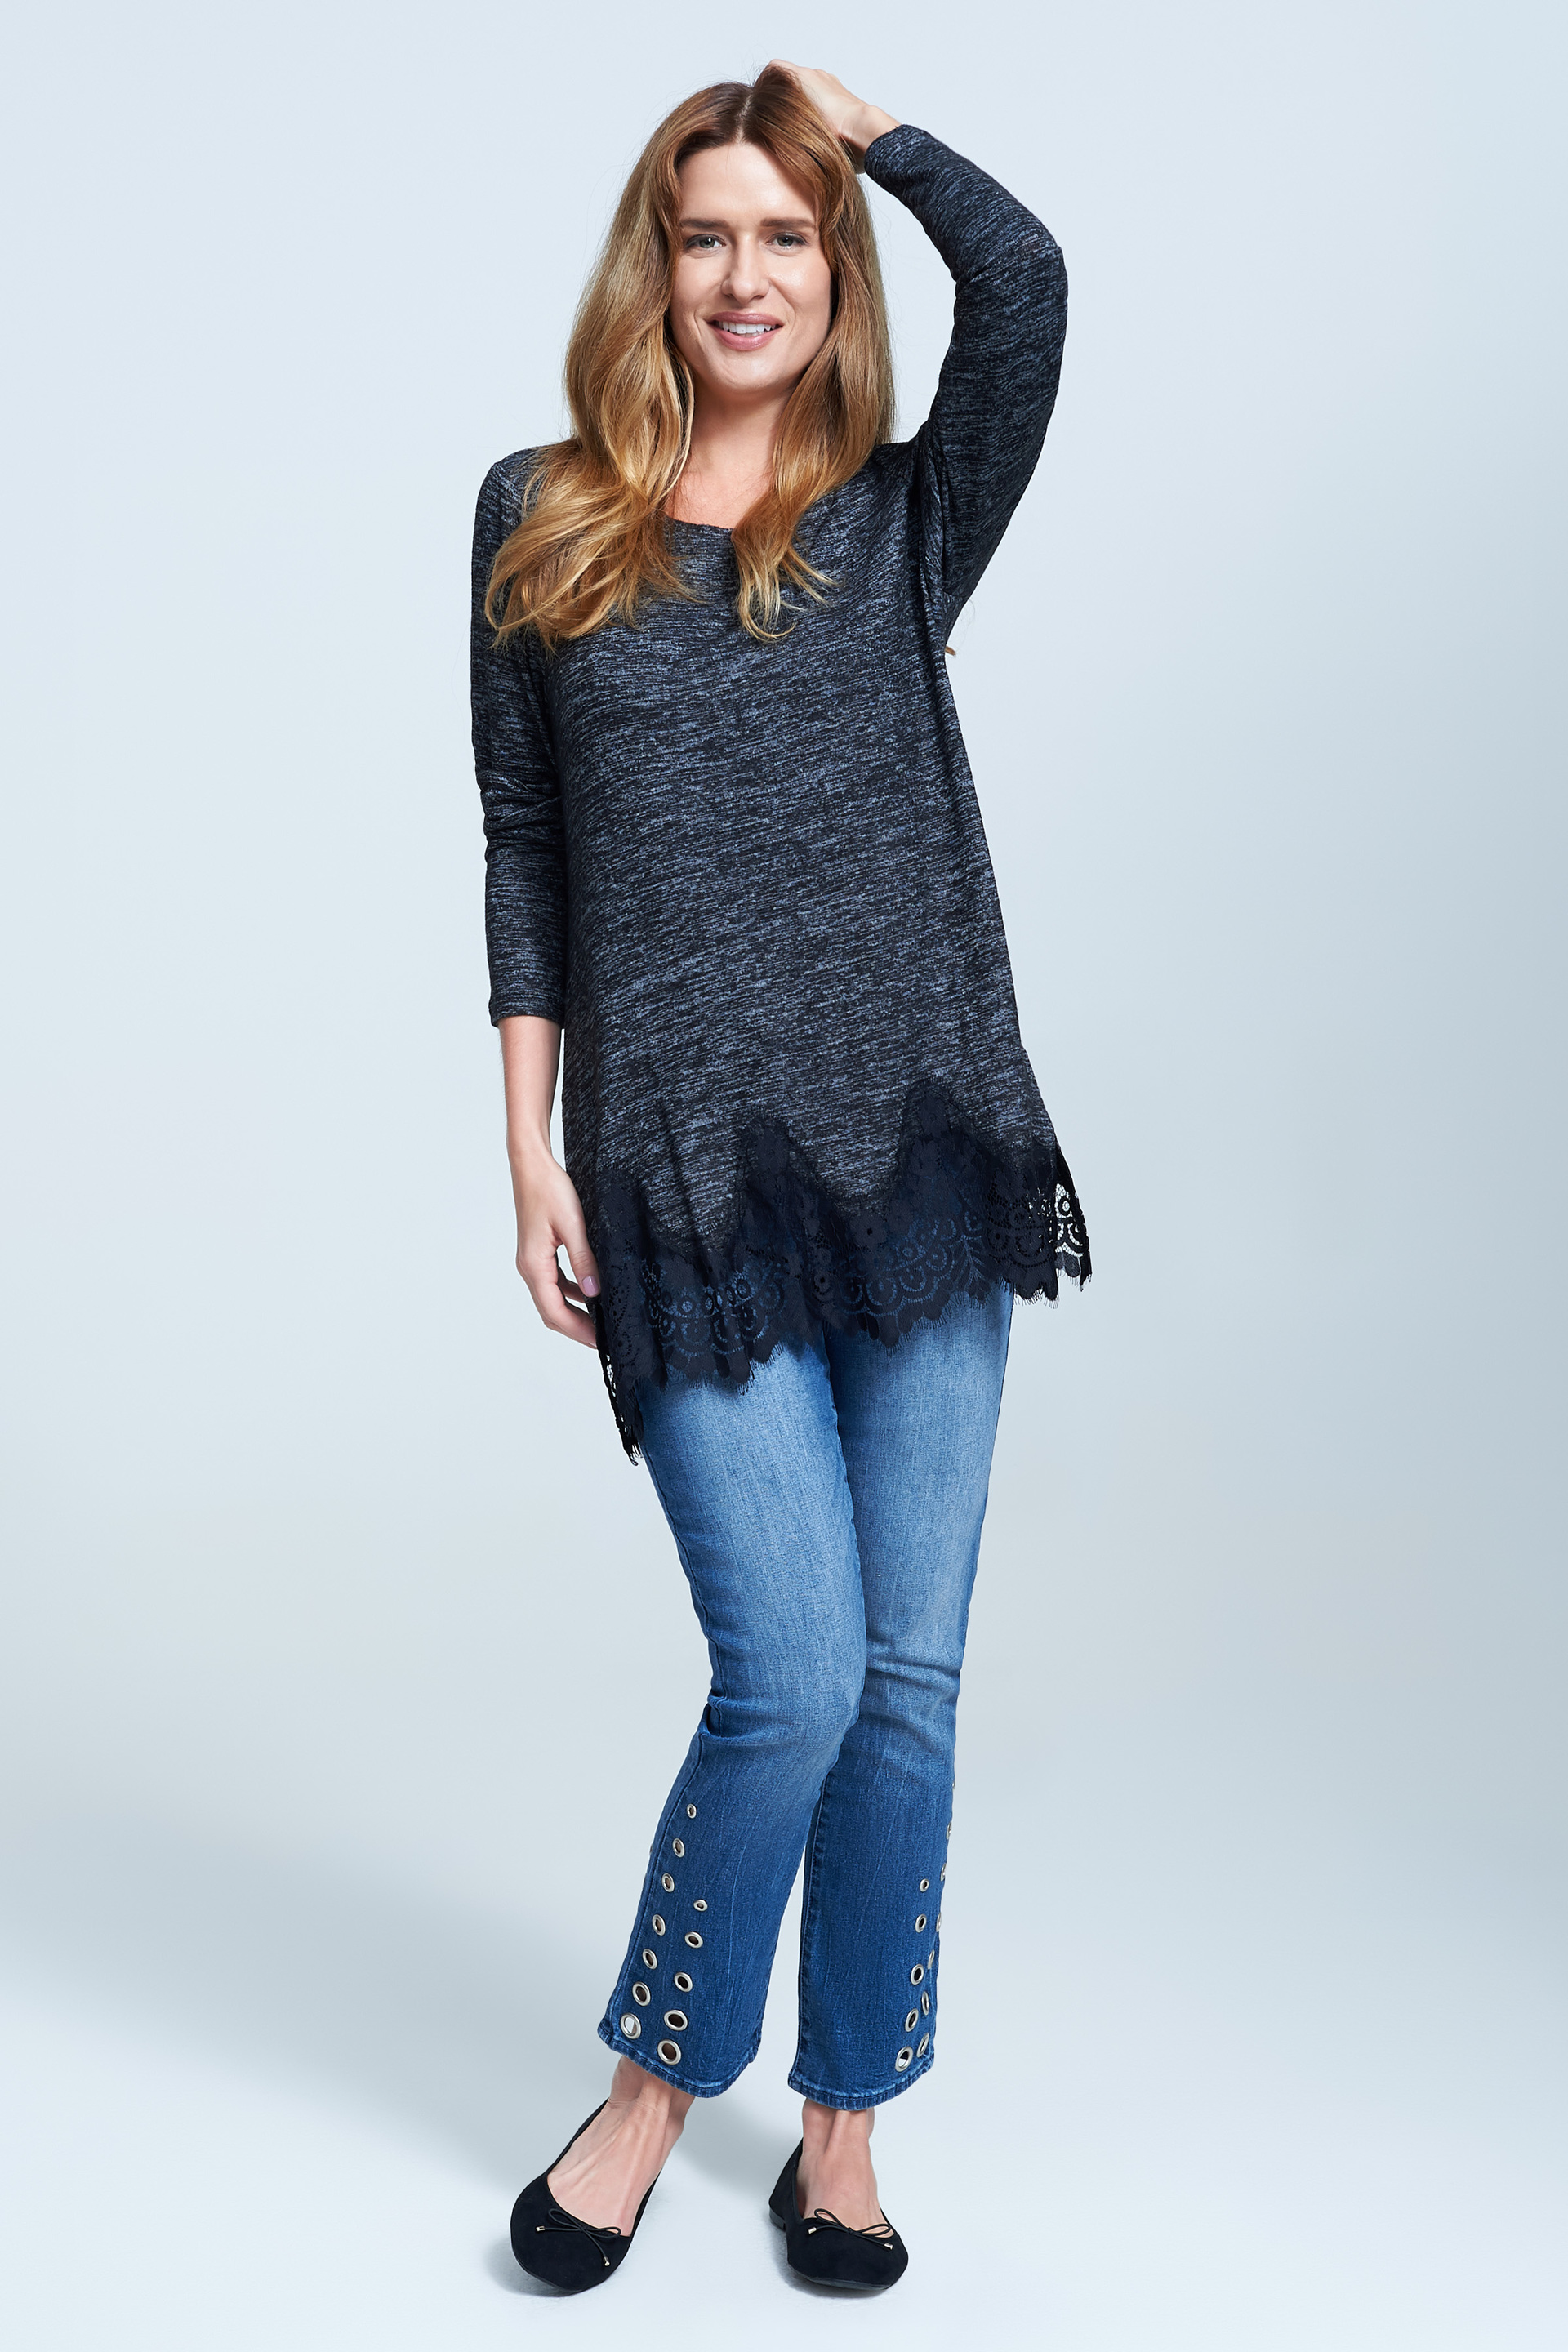 seven7 jeans knit top with lace trim